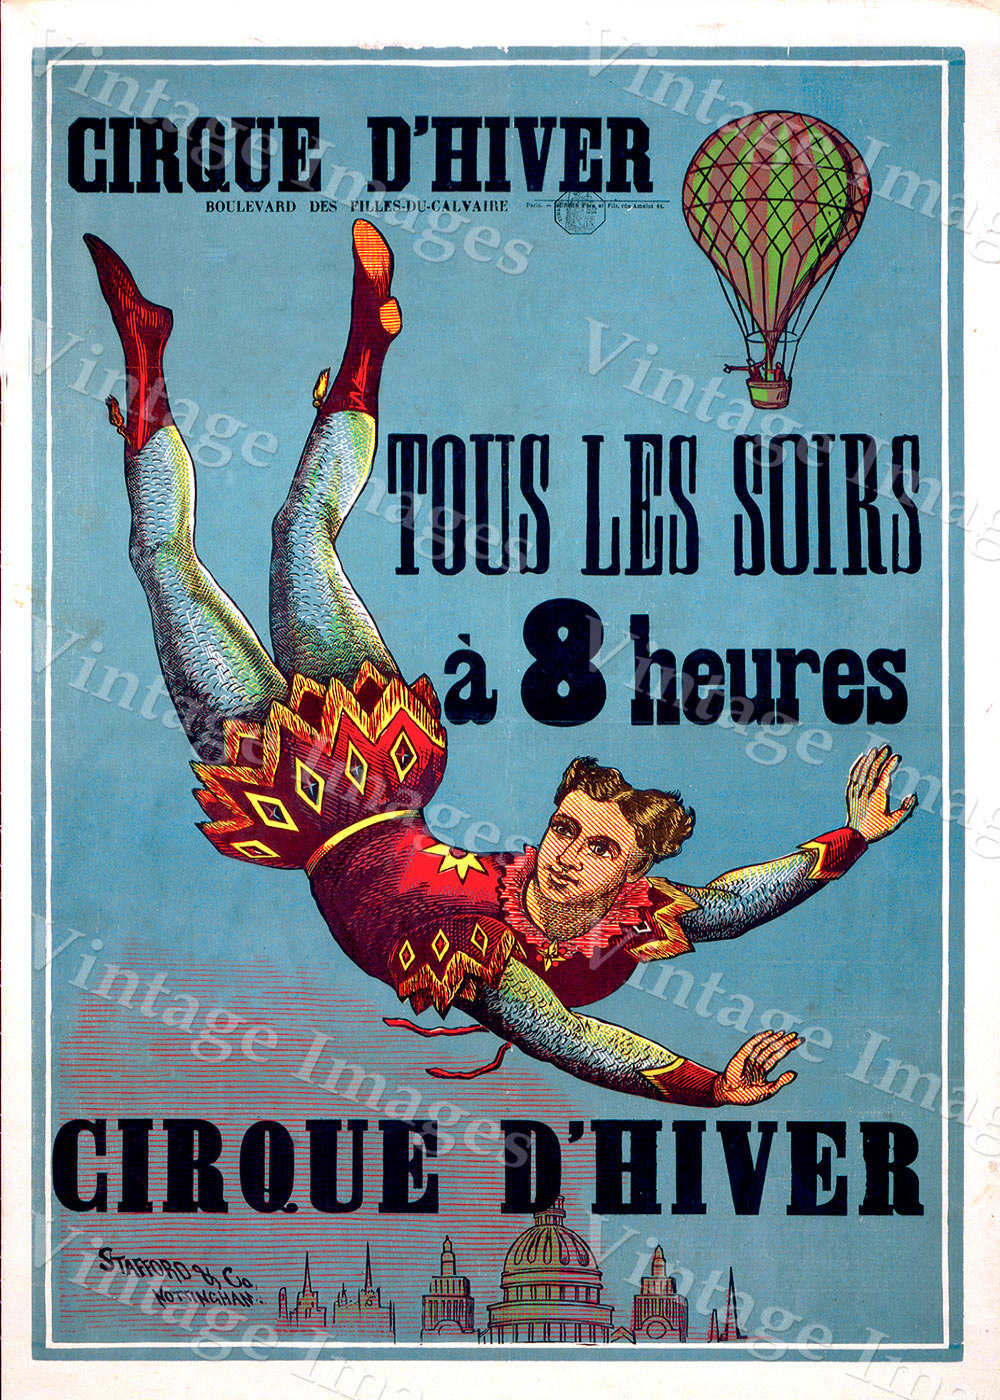 "Vintage French Cirque d' Hiver (Winter Circus) paris france Poster Fine Art Print Giclee home wall decor - 10"" x 15\"" inches [$11.00]"